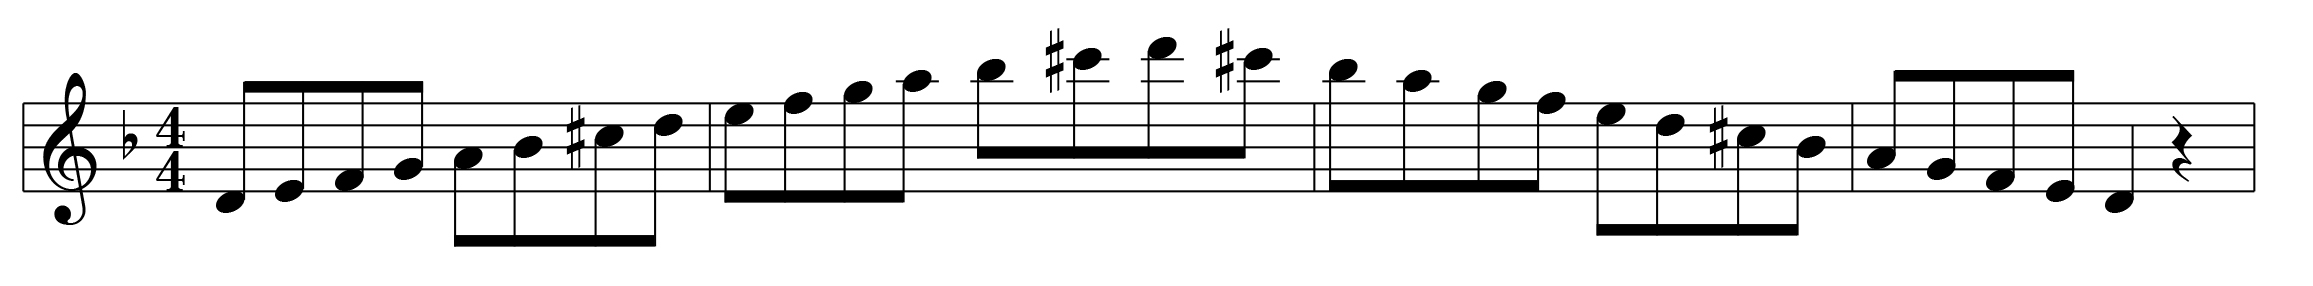 D Minor Harmonic Scale Right Hand